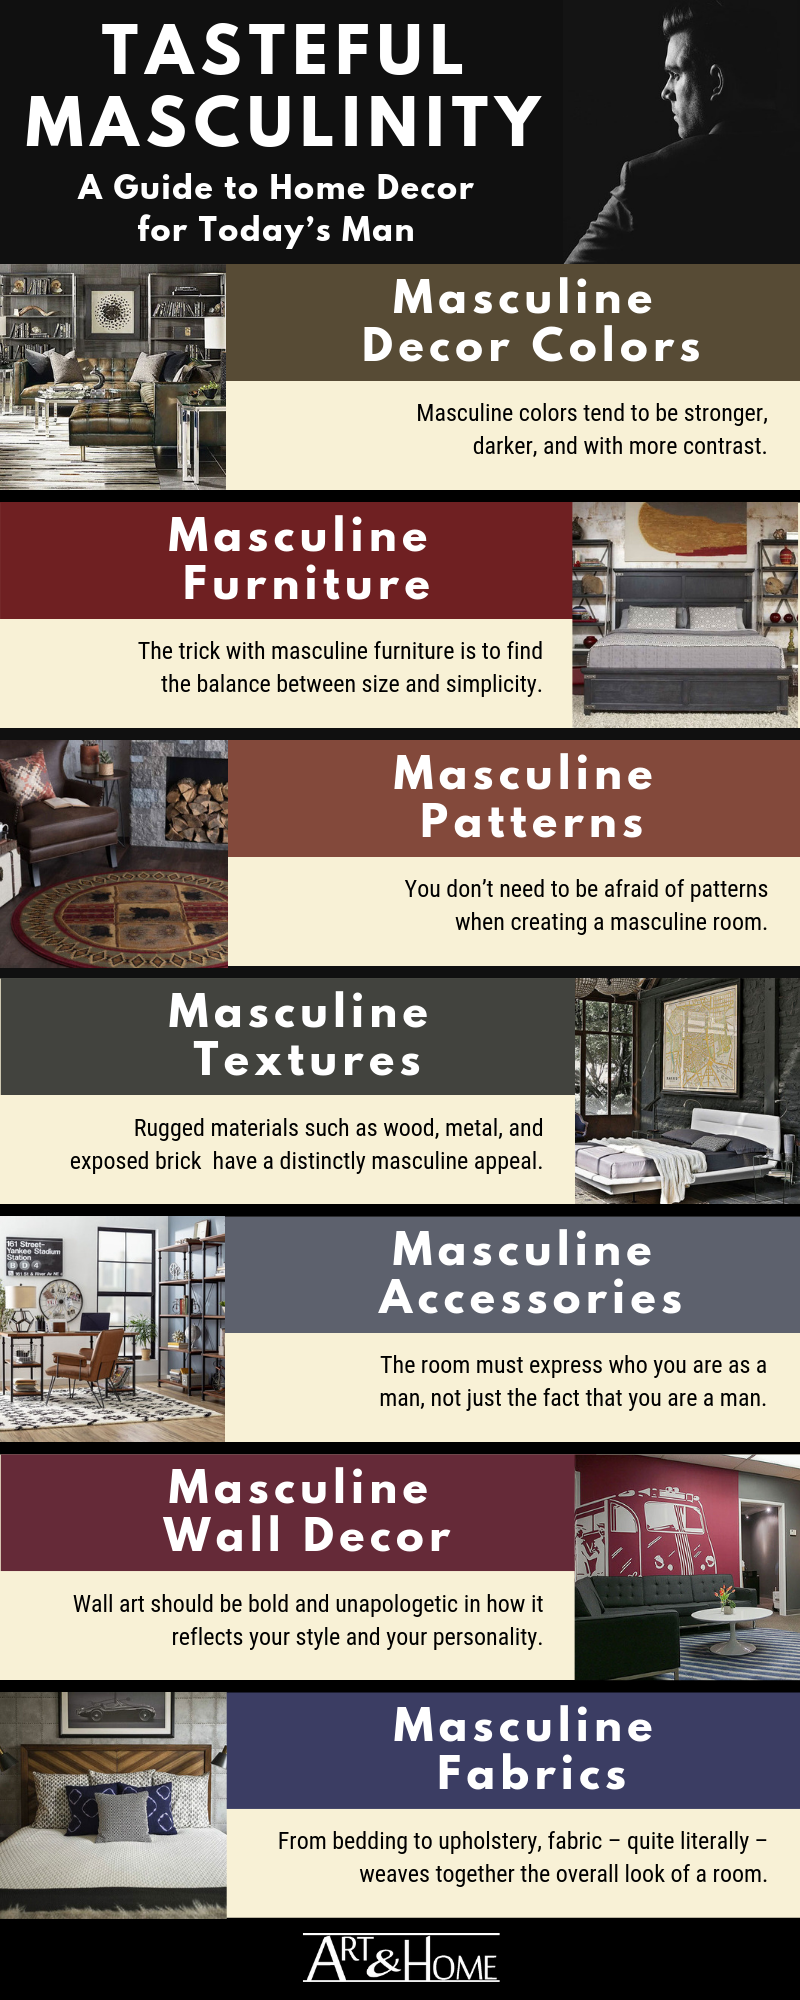 Masculine Home Decor Infographic